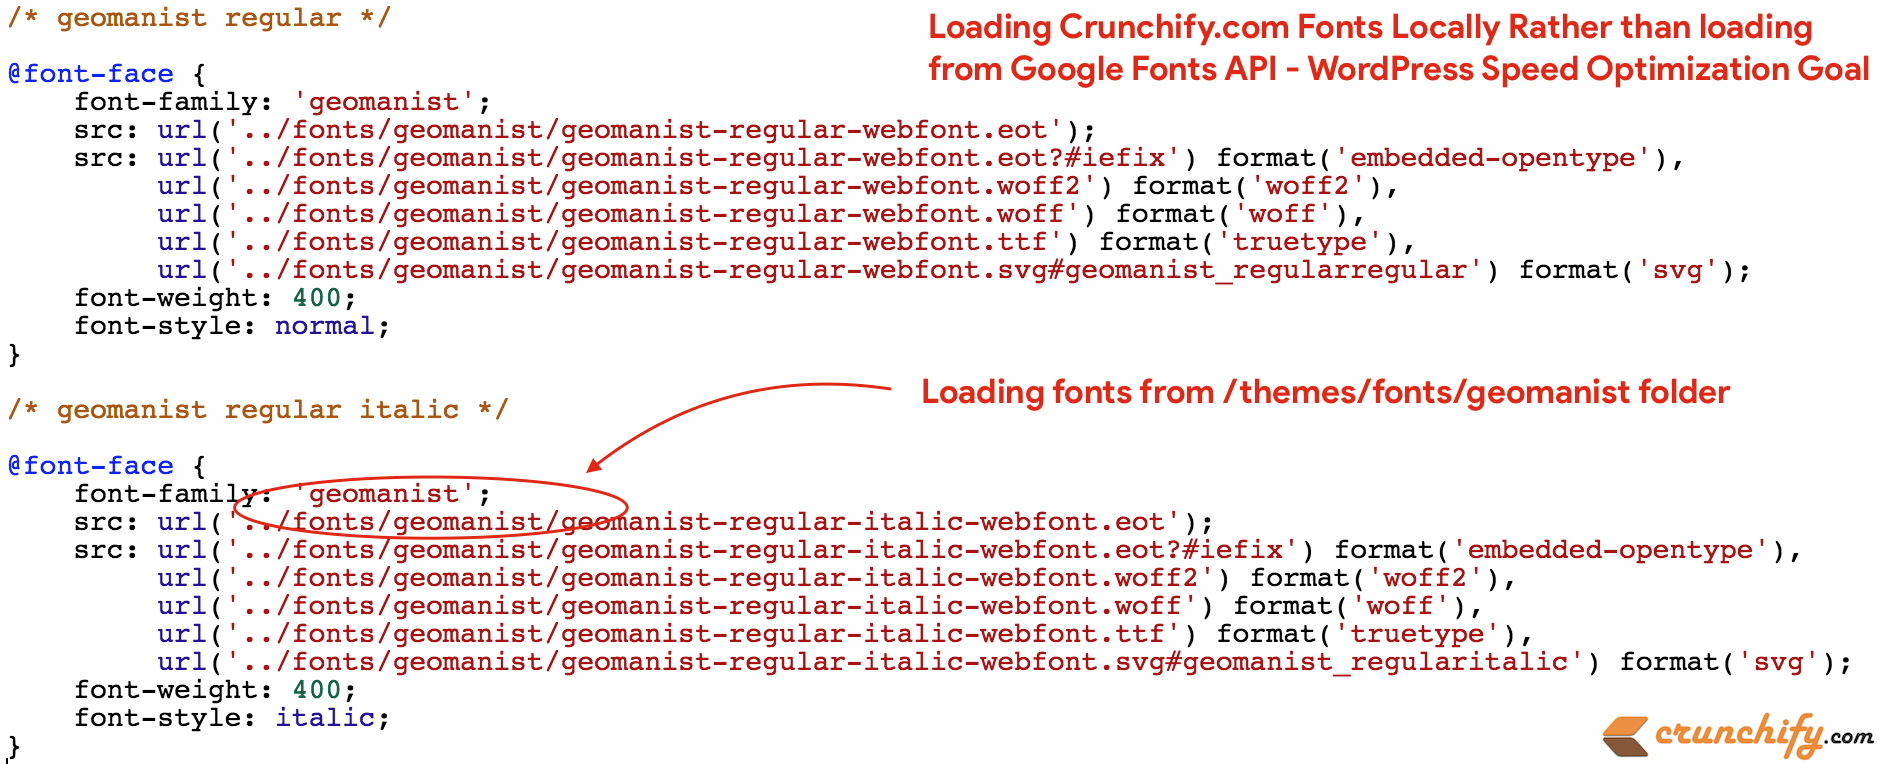 How to Load WordPress Fonts locally rather making call to